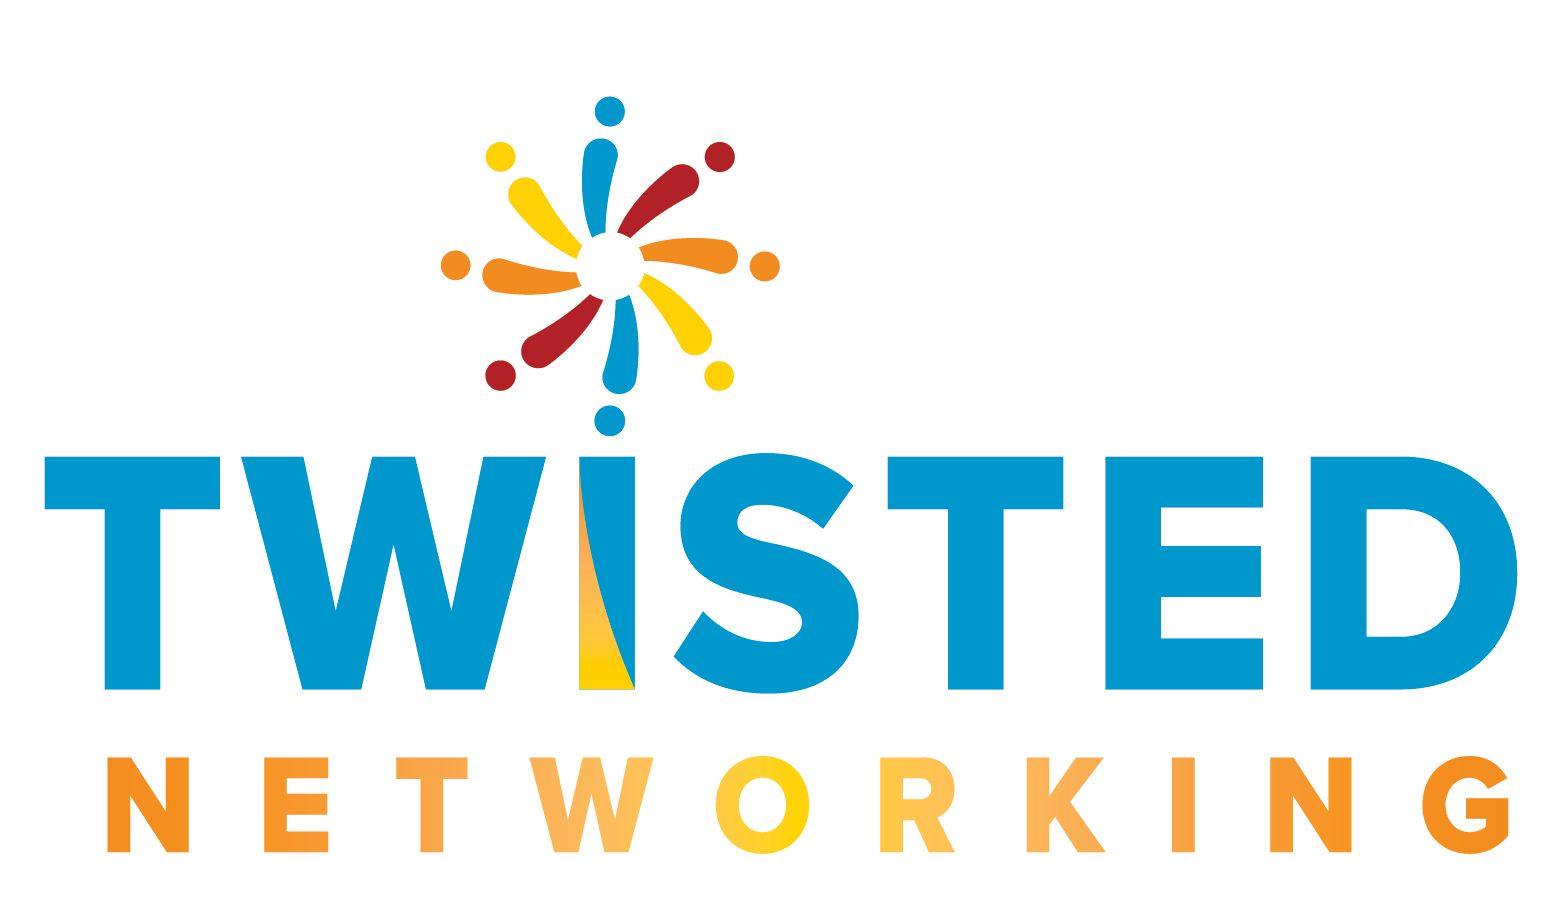 Twisted Networking-Somerville, MA